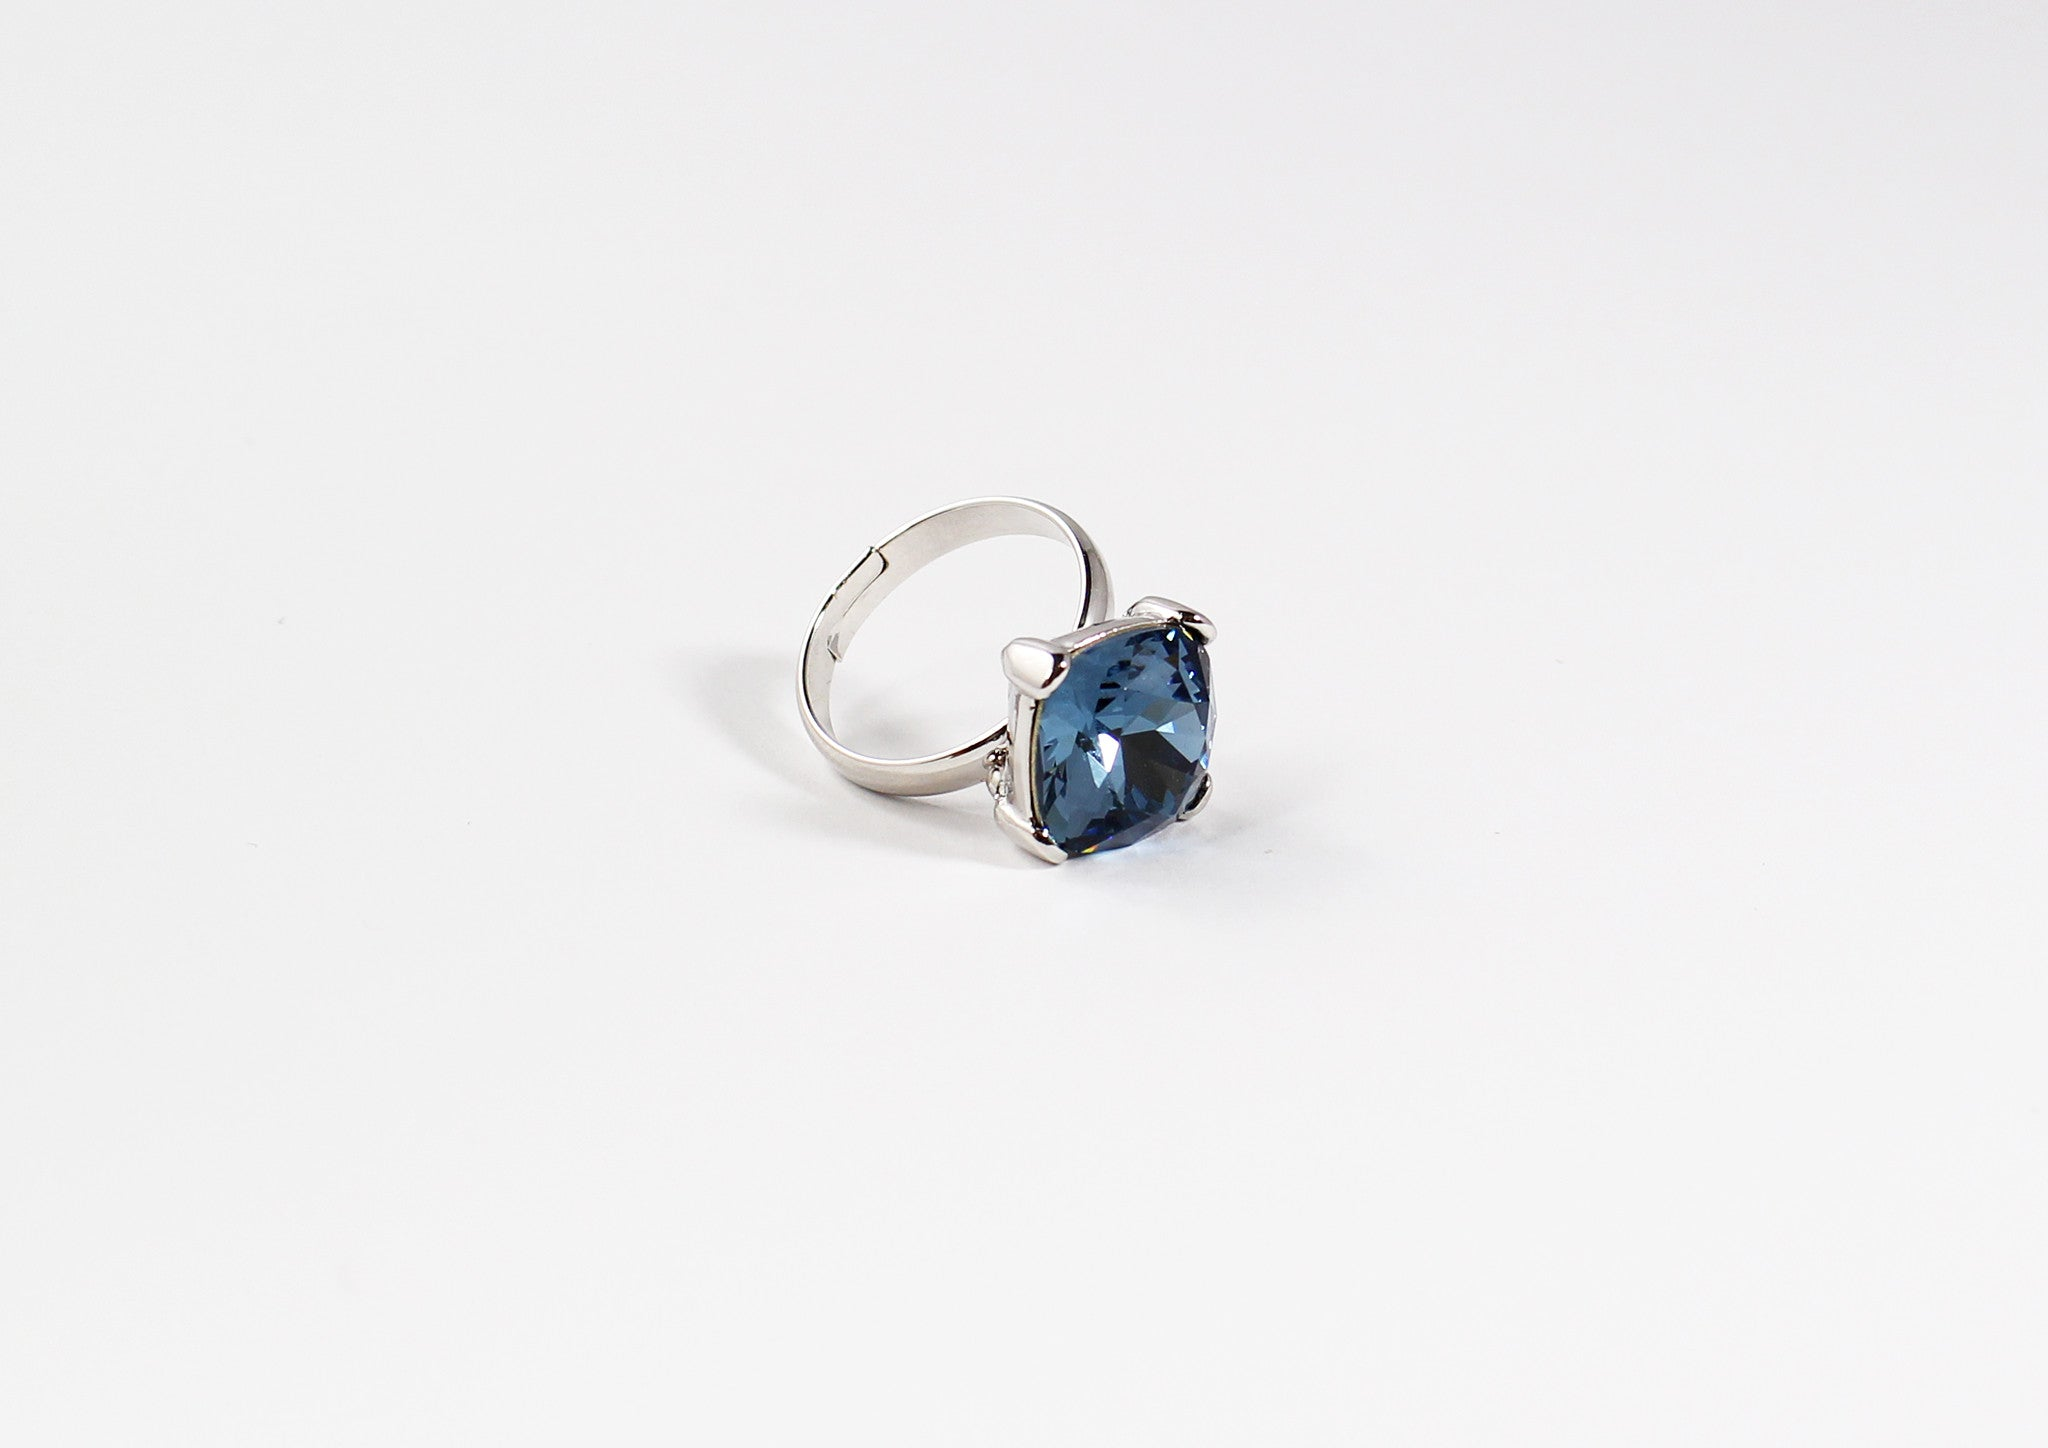 SWAROVSKI Crystal Sea Blue Ring